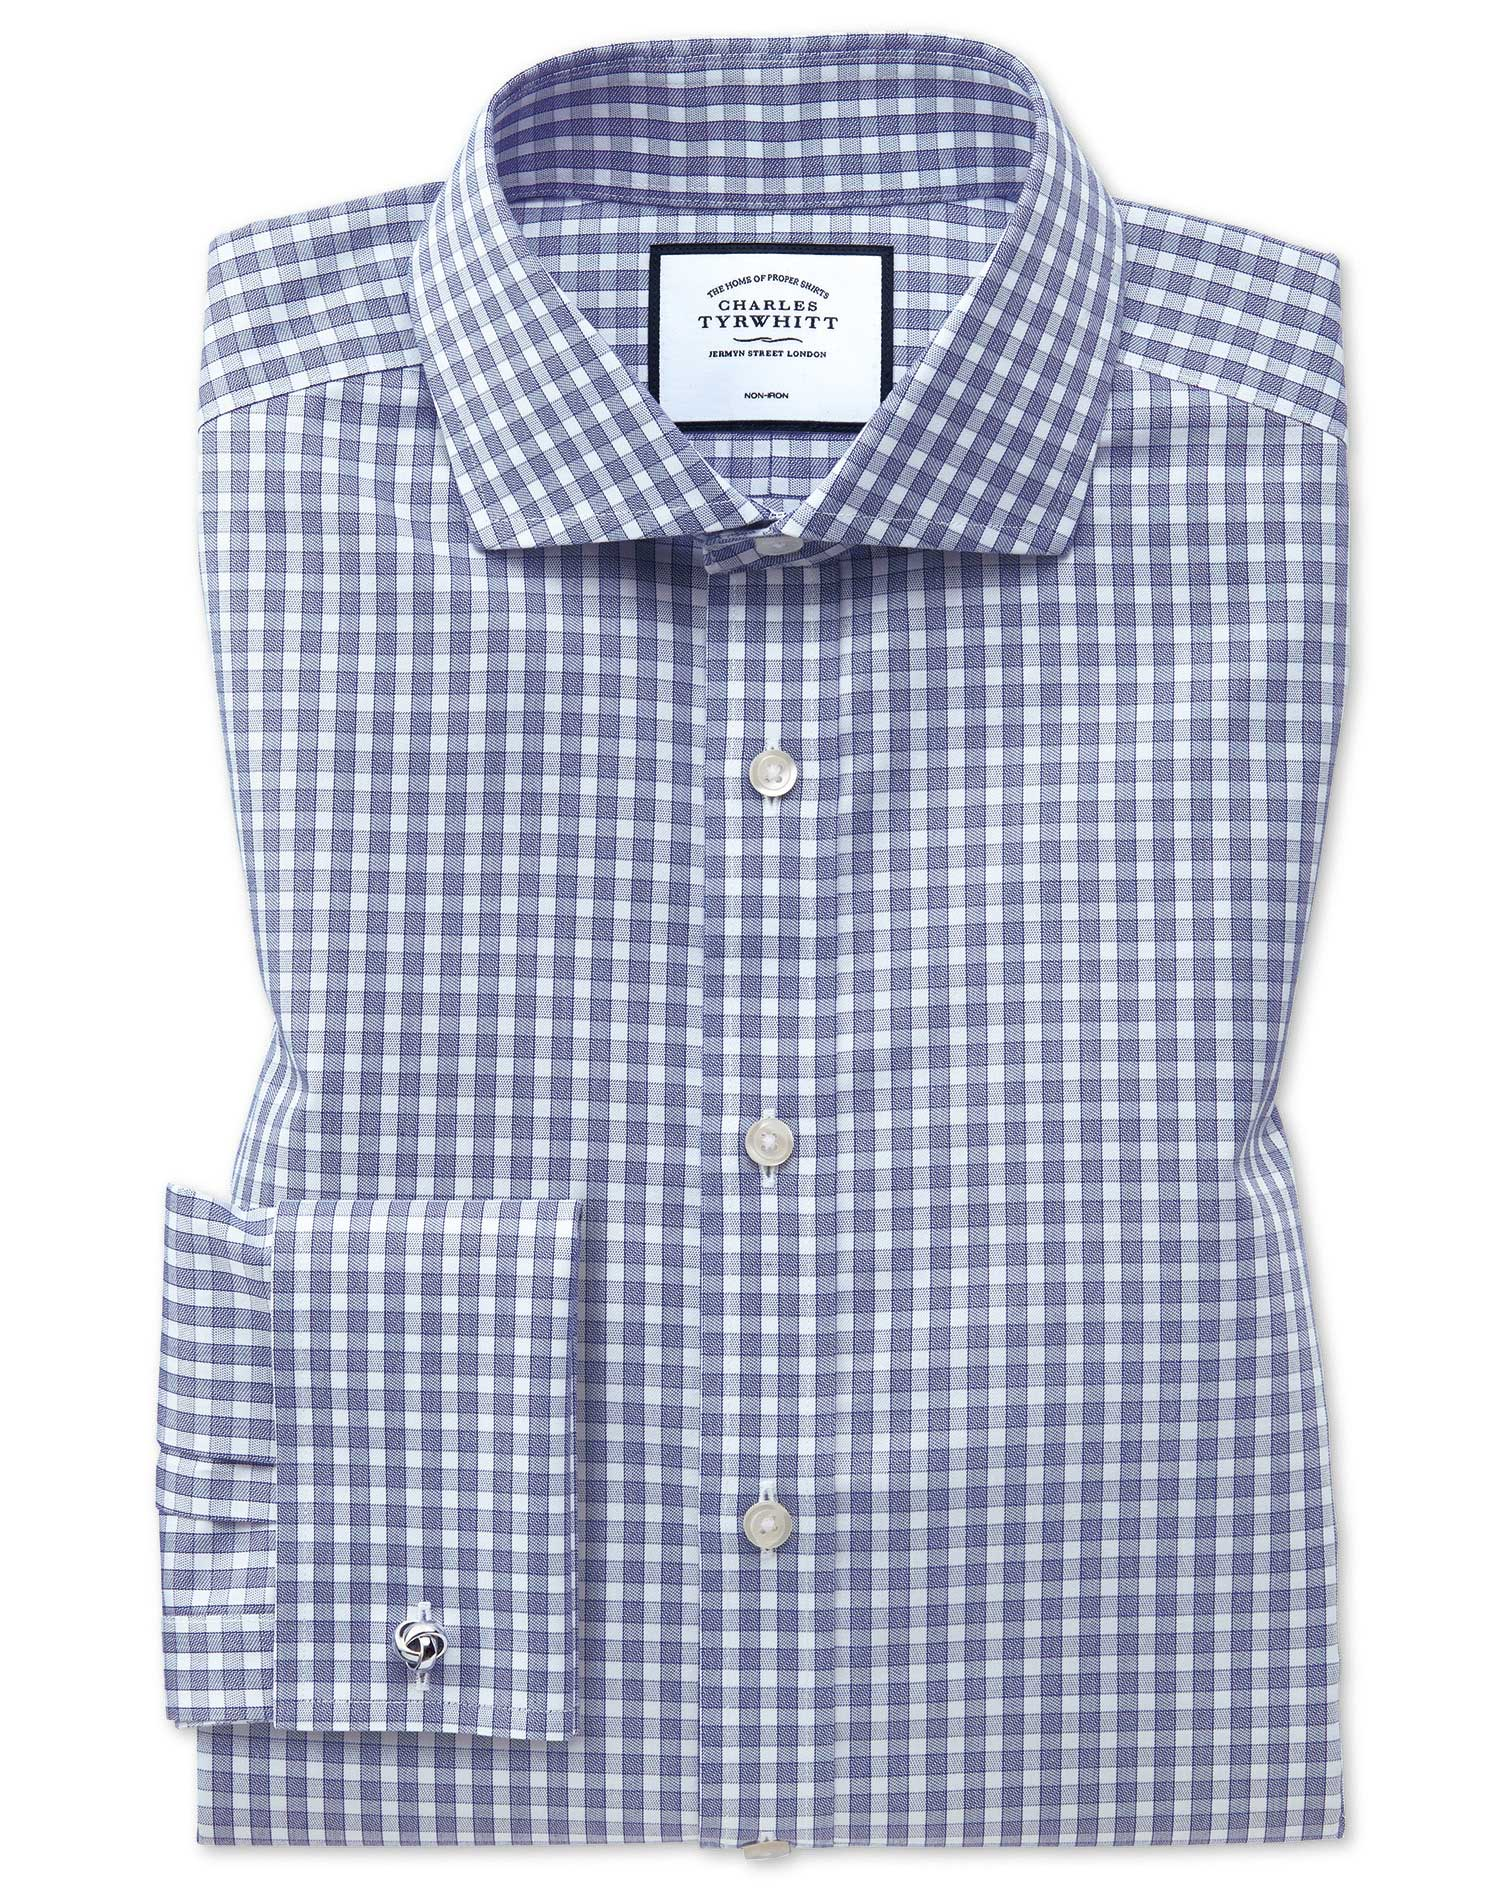 Slim Fit Non-Iron Twill Gingham Blue Cotton Formal Shirt Single Cuff Size 16.5/35 by Charles Tyrwhit